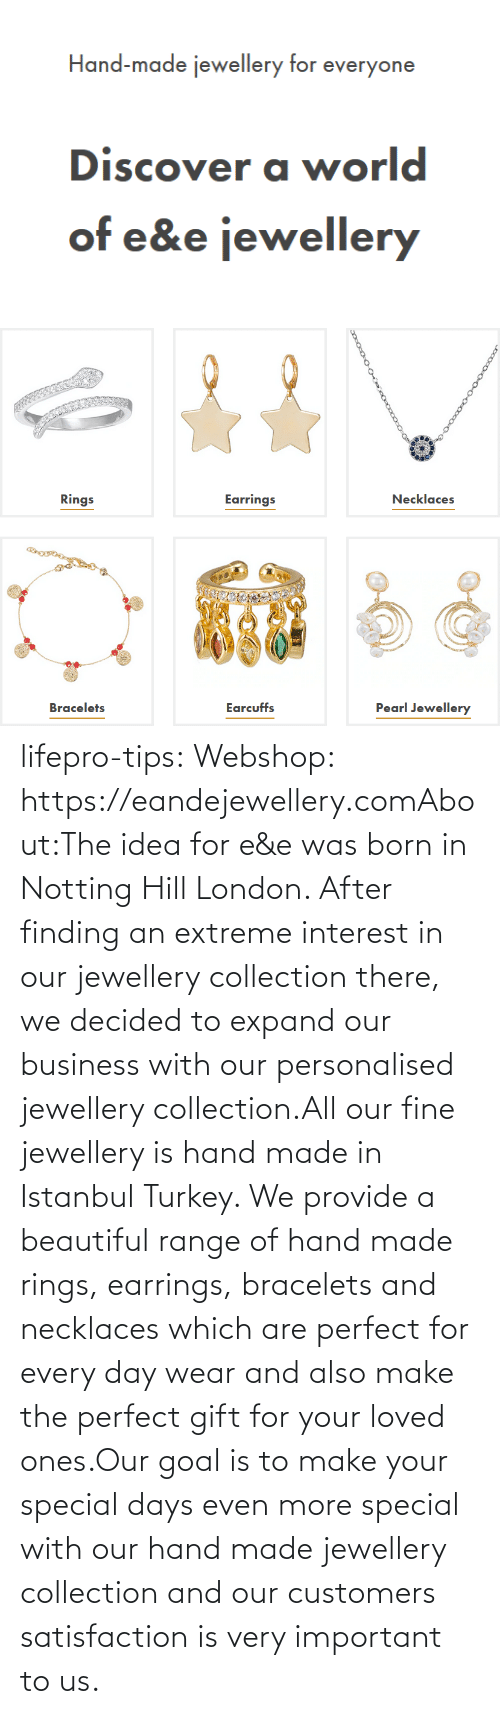 fine: lifepro-tips: Webshop: https://eandejewellery.comAbout:The idea for e&e was born in Notting Hill London. After  finding an extreme interest in our jewellery collection there, we  decided to expand our business with our personalised jewellery  collection.All our fine jewellery is hand made in Istanbul Turkey. We  provide a beautiful range of hand made rings, earrings, bracelets and  necklaces which are perfect for every day wear and also make the perfect  gift for your loved ones.Our goal is to make your special days even more special with  our hand made jewellery collection and our customers satisfaction is  very important to us.